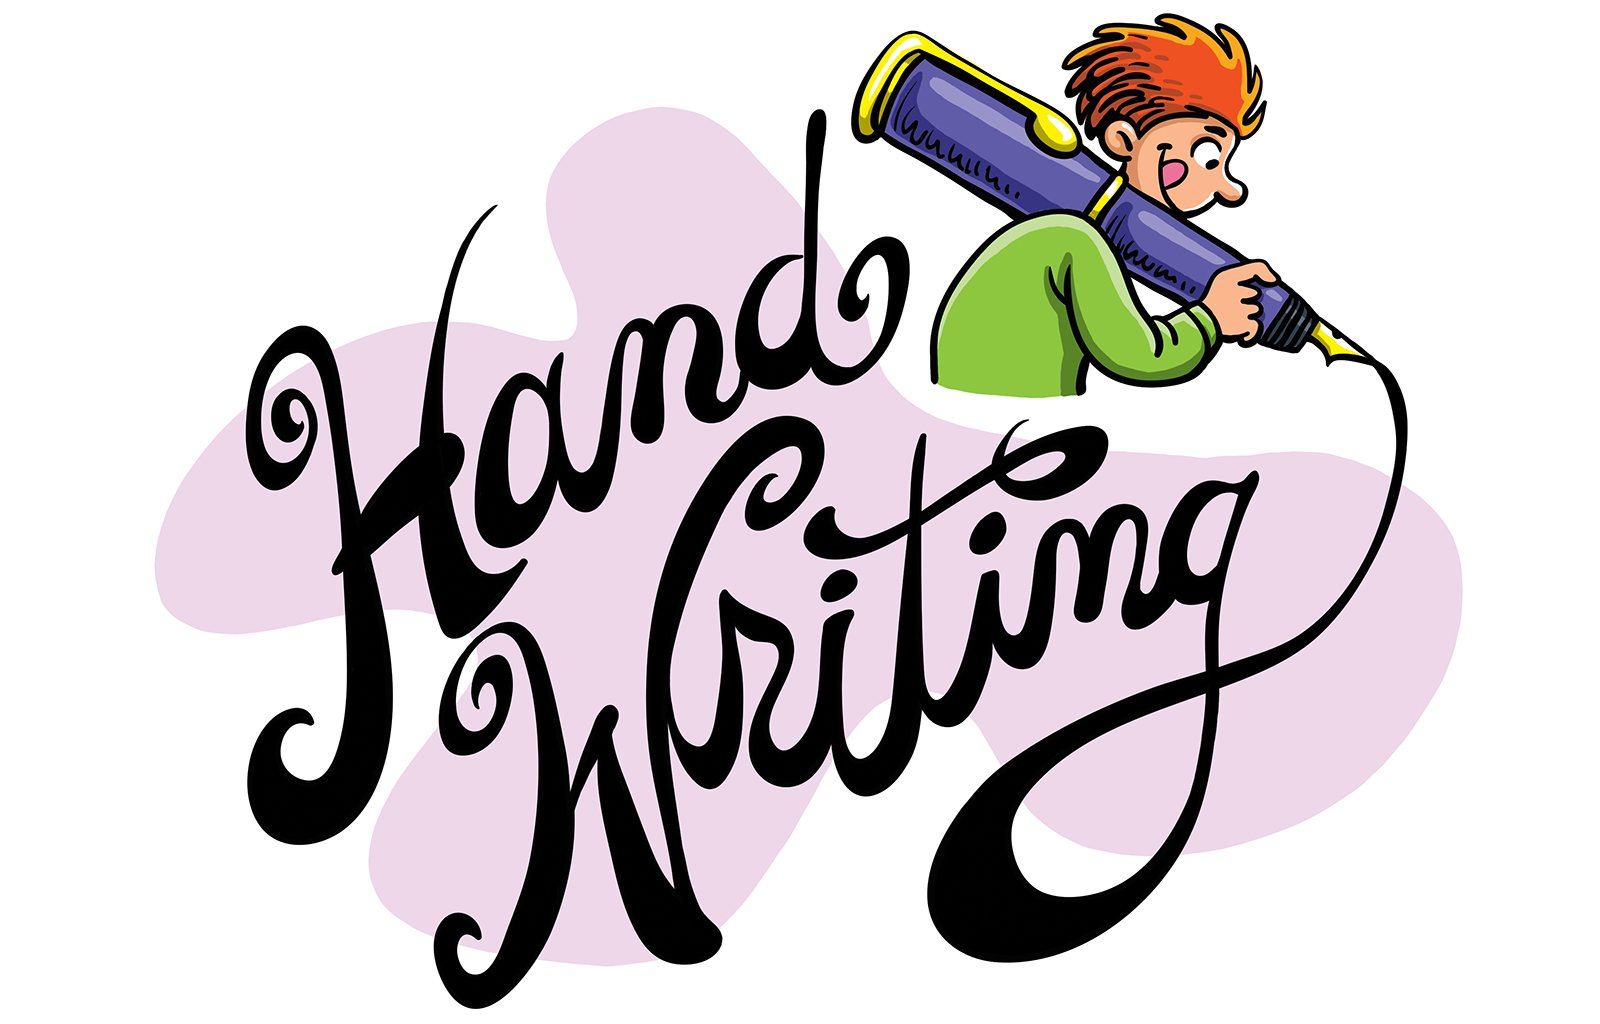 Spelling clipart cursive. Kindergarten handwriting tagged mcruffy